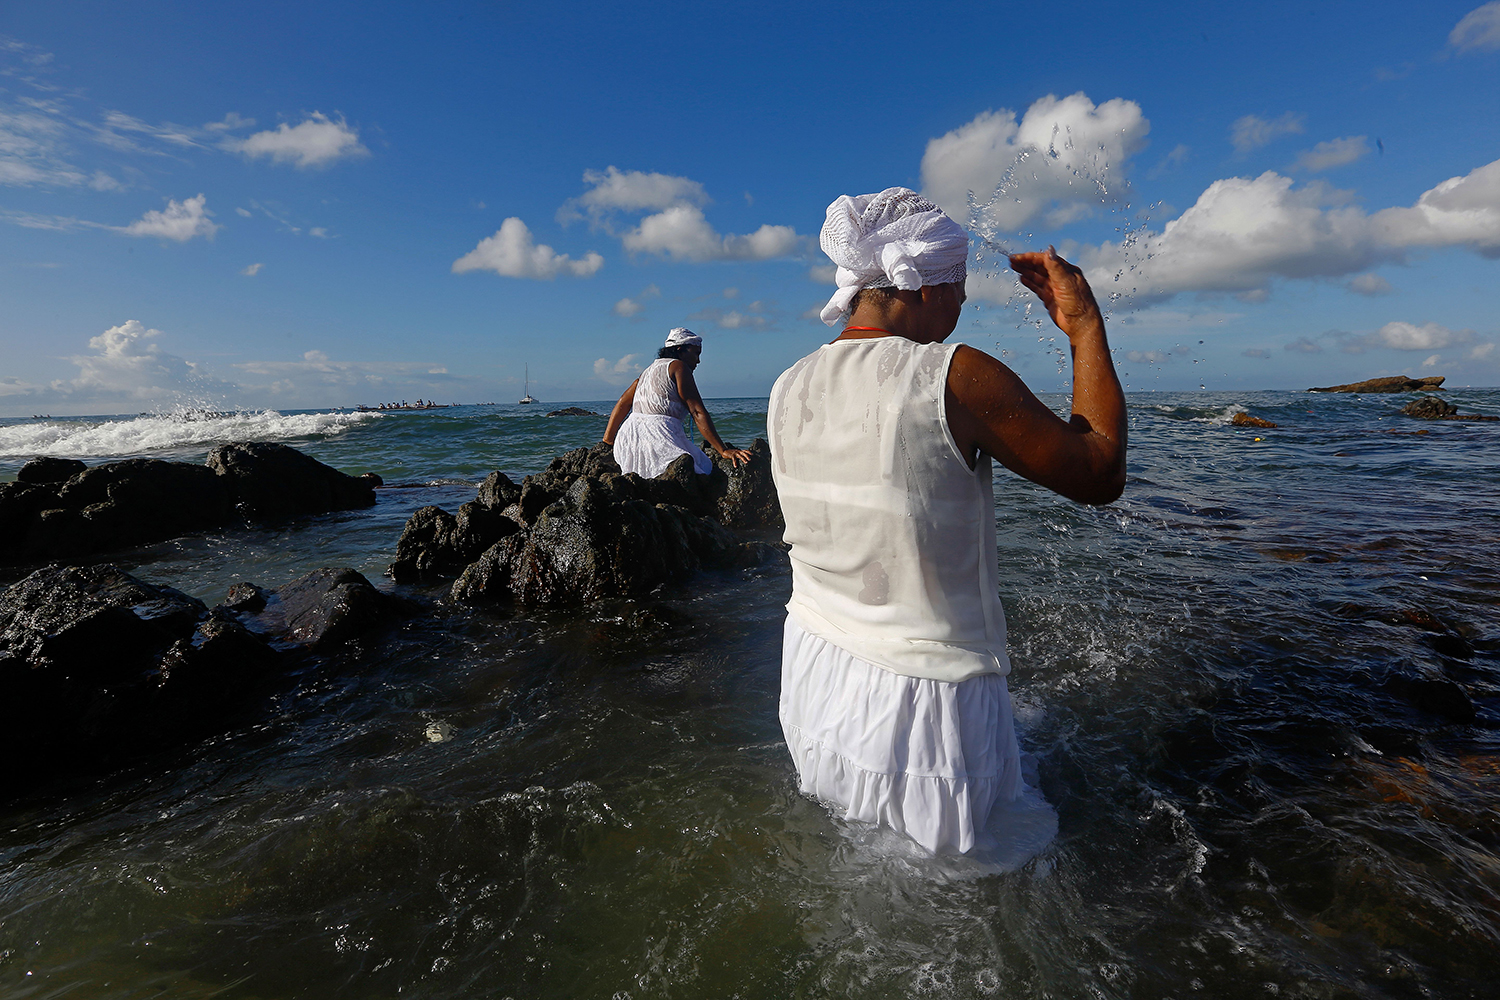 Worshippers take part in the traditional ceremony of Iemanja, the goddess of the sea of the Afro-Brazilian religion Umbanda, in Salvador, Bahia, Brazil on Feb. 2. RAFAEL MARTINS/AFP via Getty Images